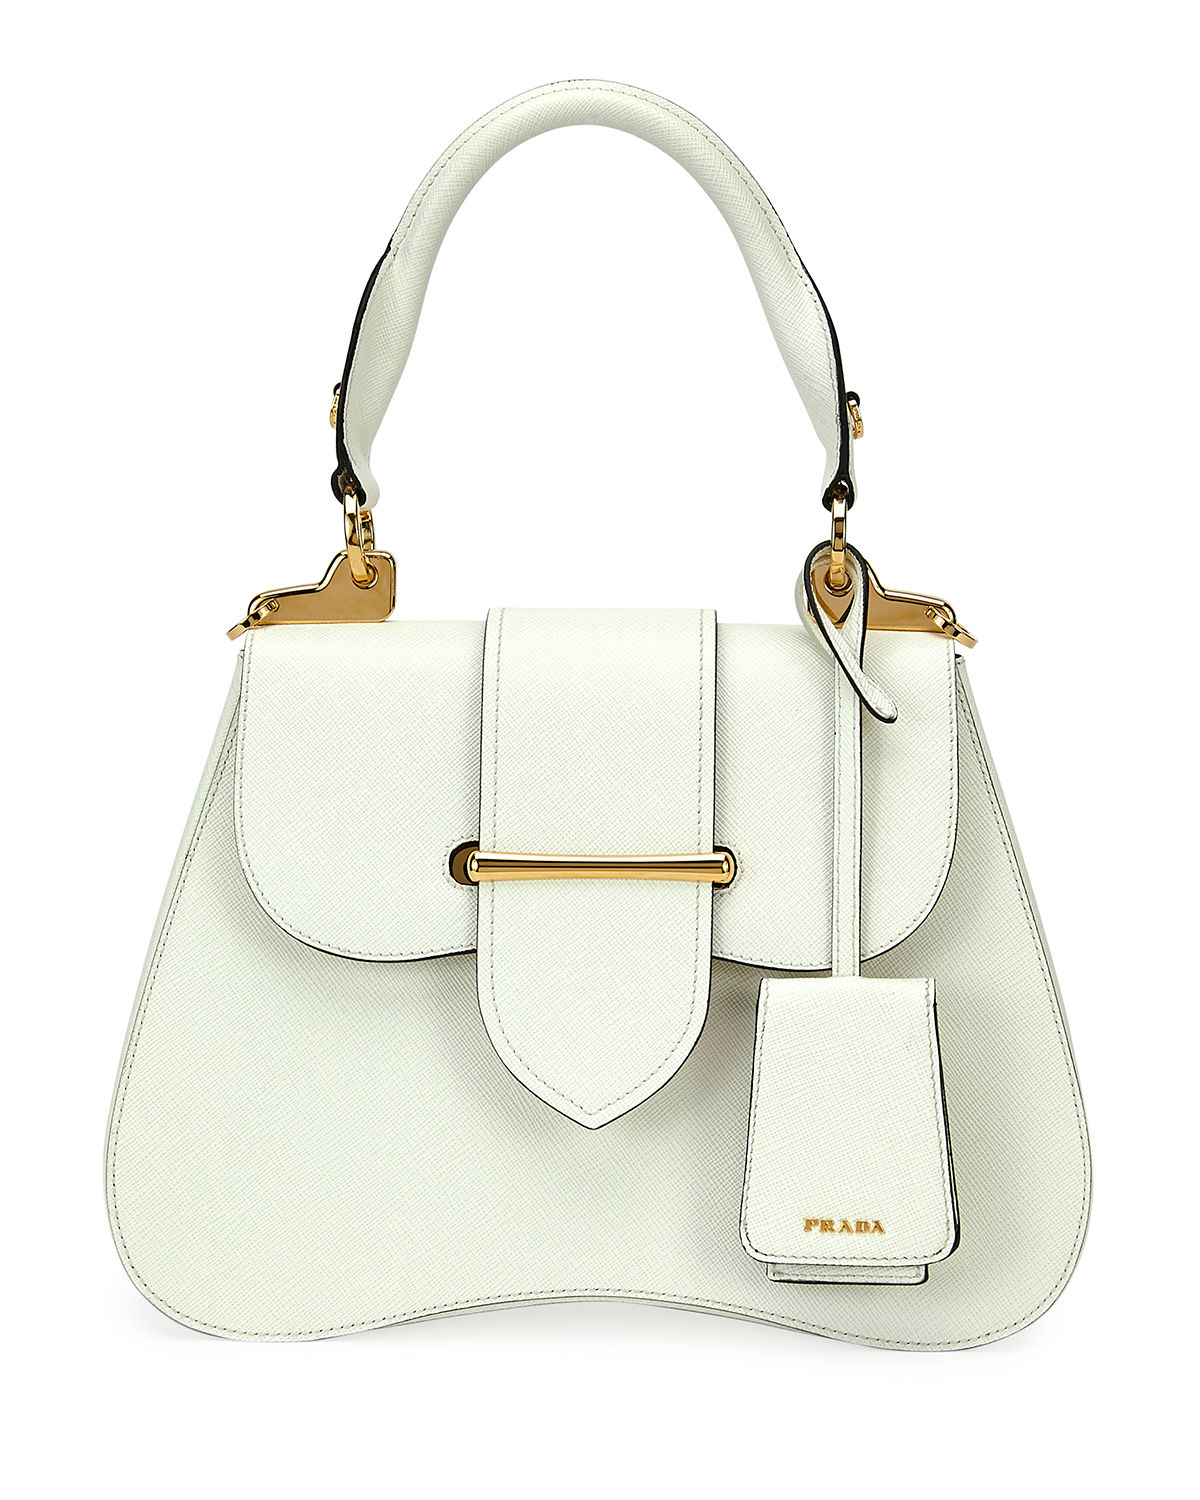 8609ee7c62d0 Prada Small Prada Sidonie Top-Handle Tote Bag | Neiman Marcus